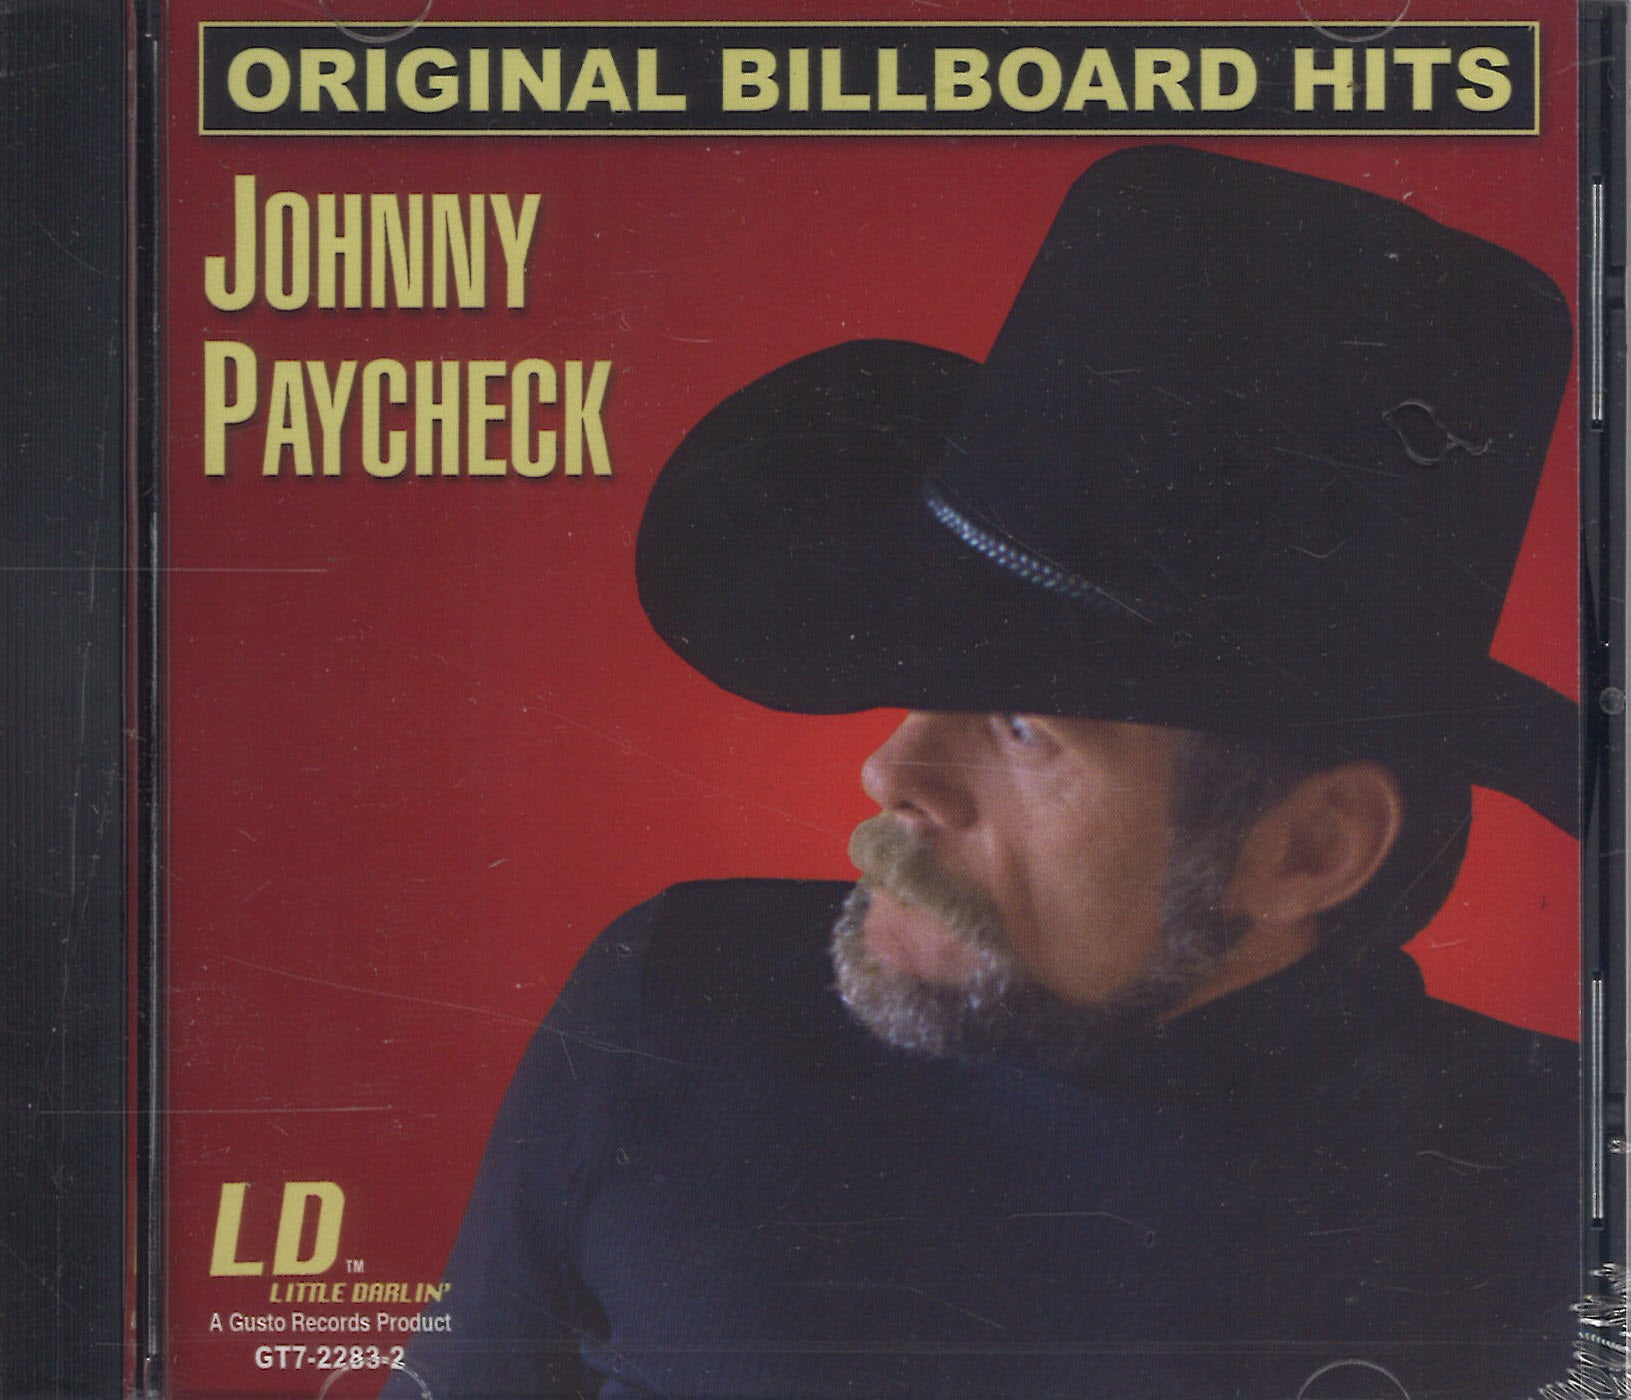 Johnny Paycheck Original Billboard Hits